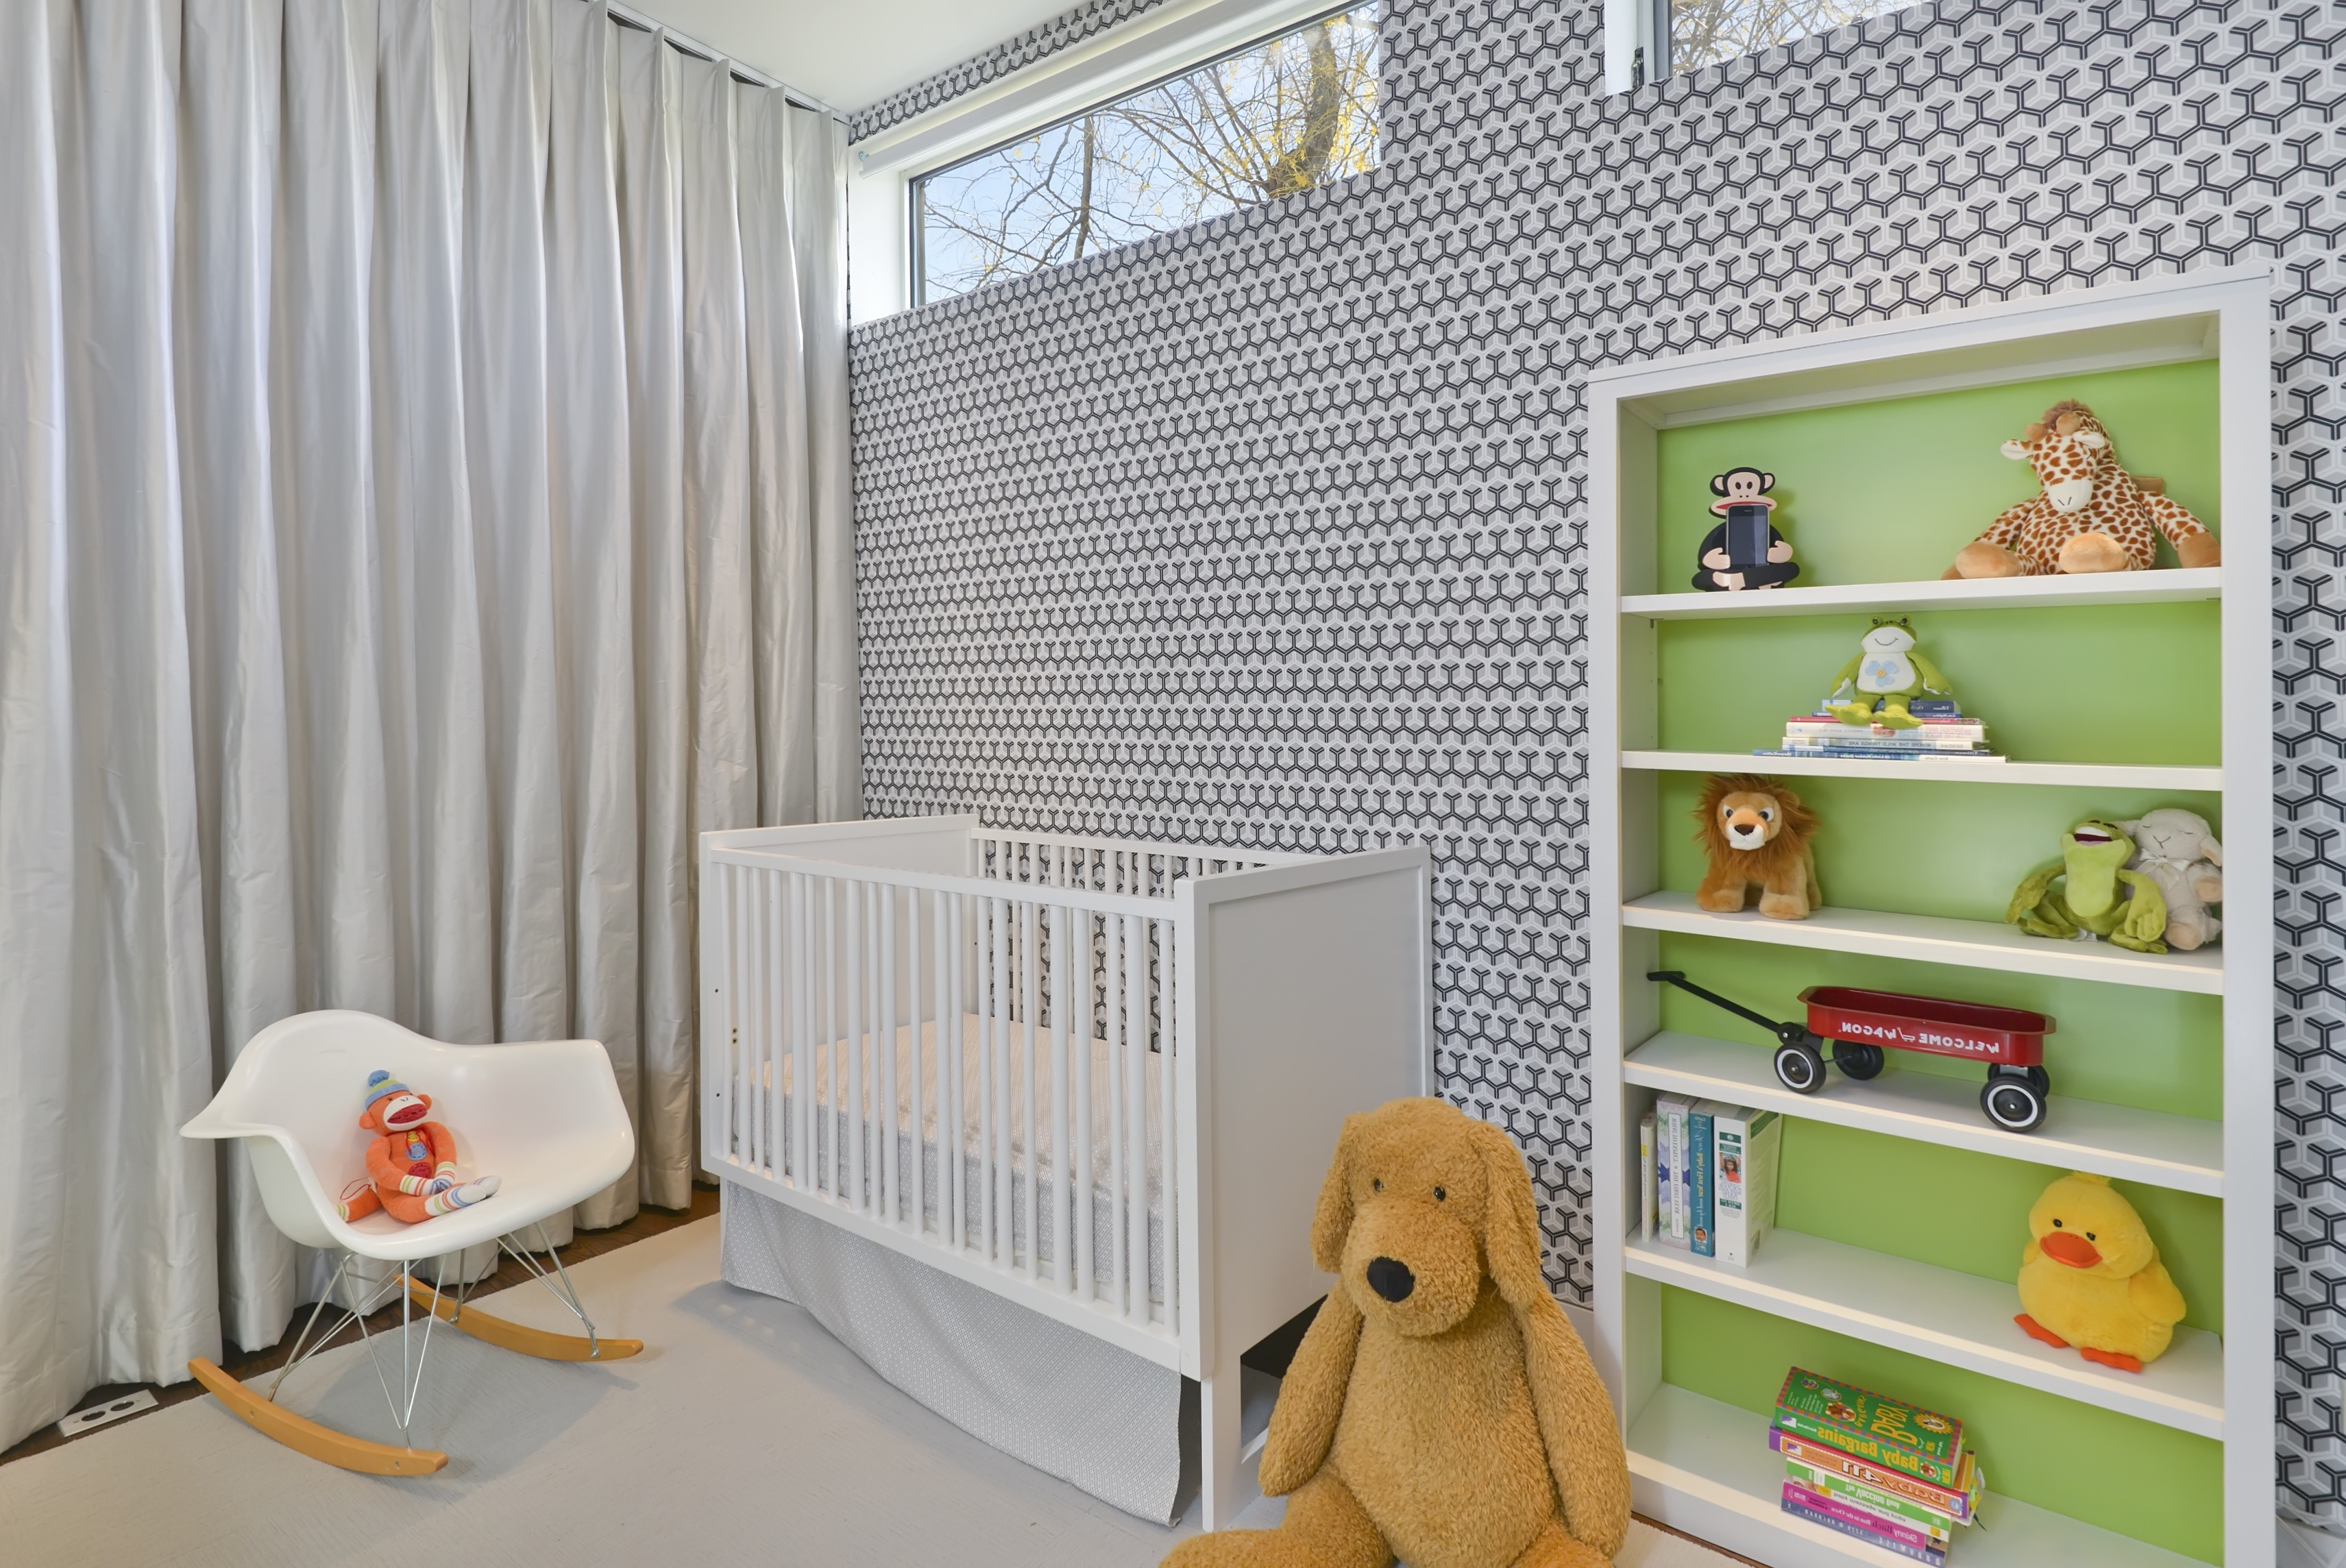 Minimalist Baby Room Decor With Simple Furnishings And Geometric Patterns (Image 16 of 33)